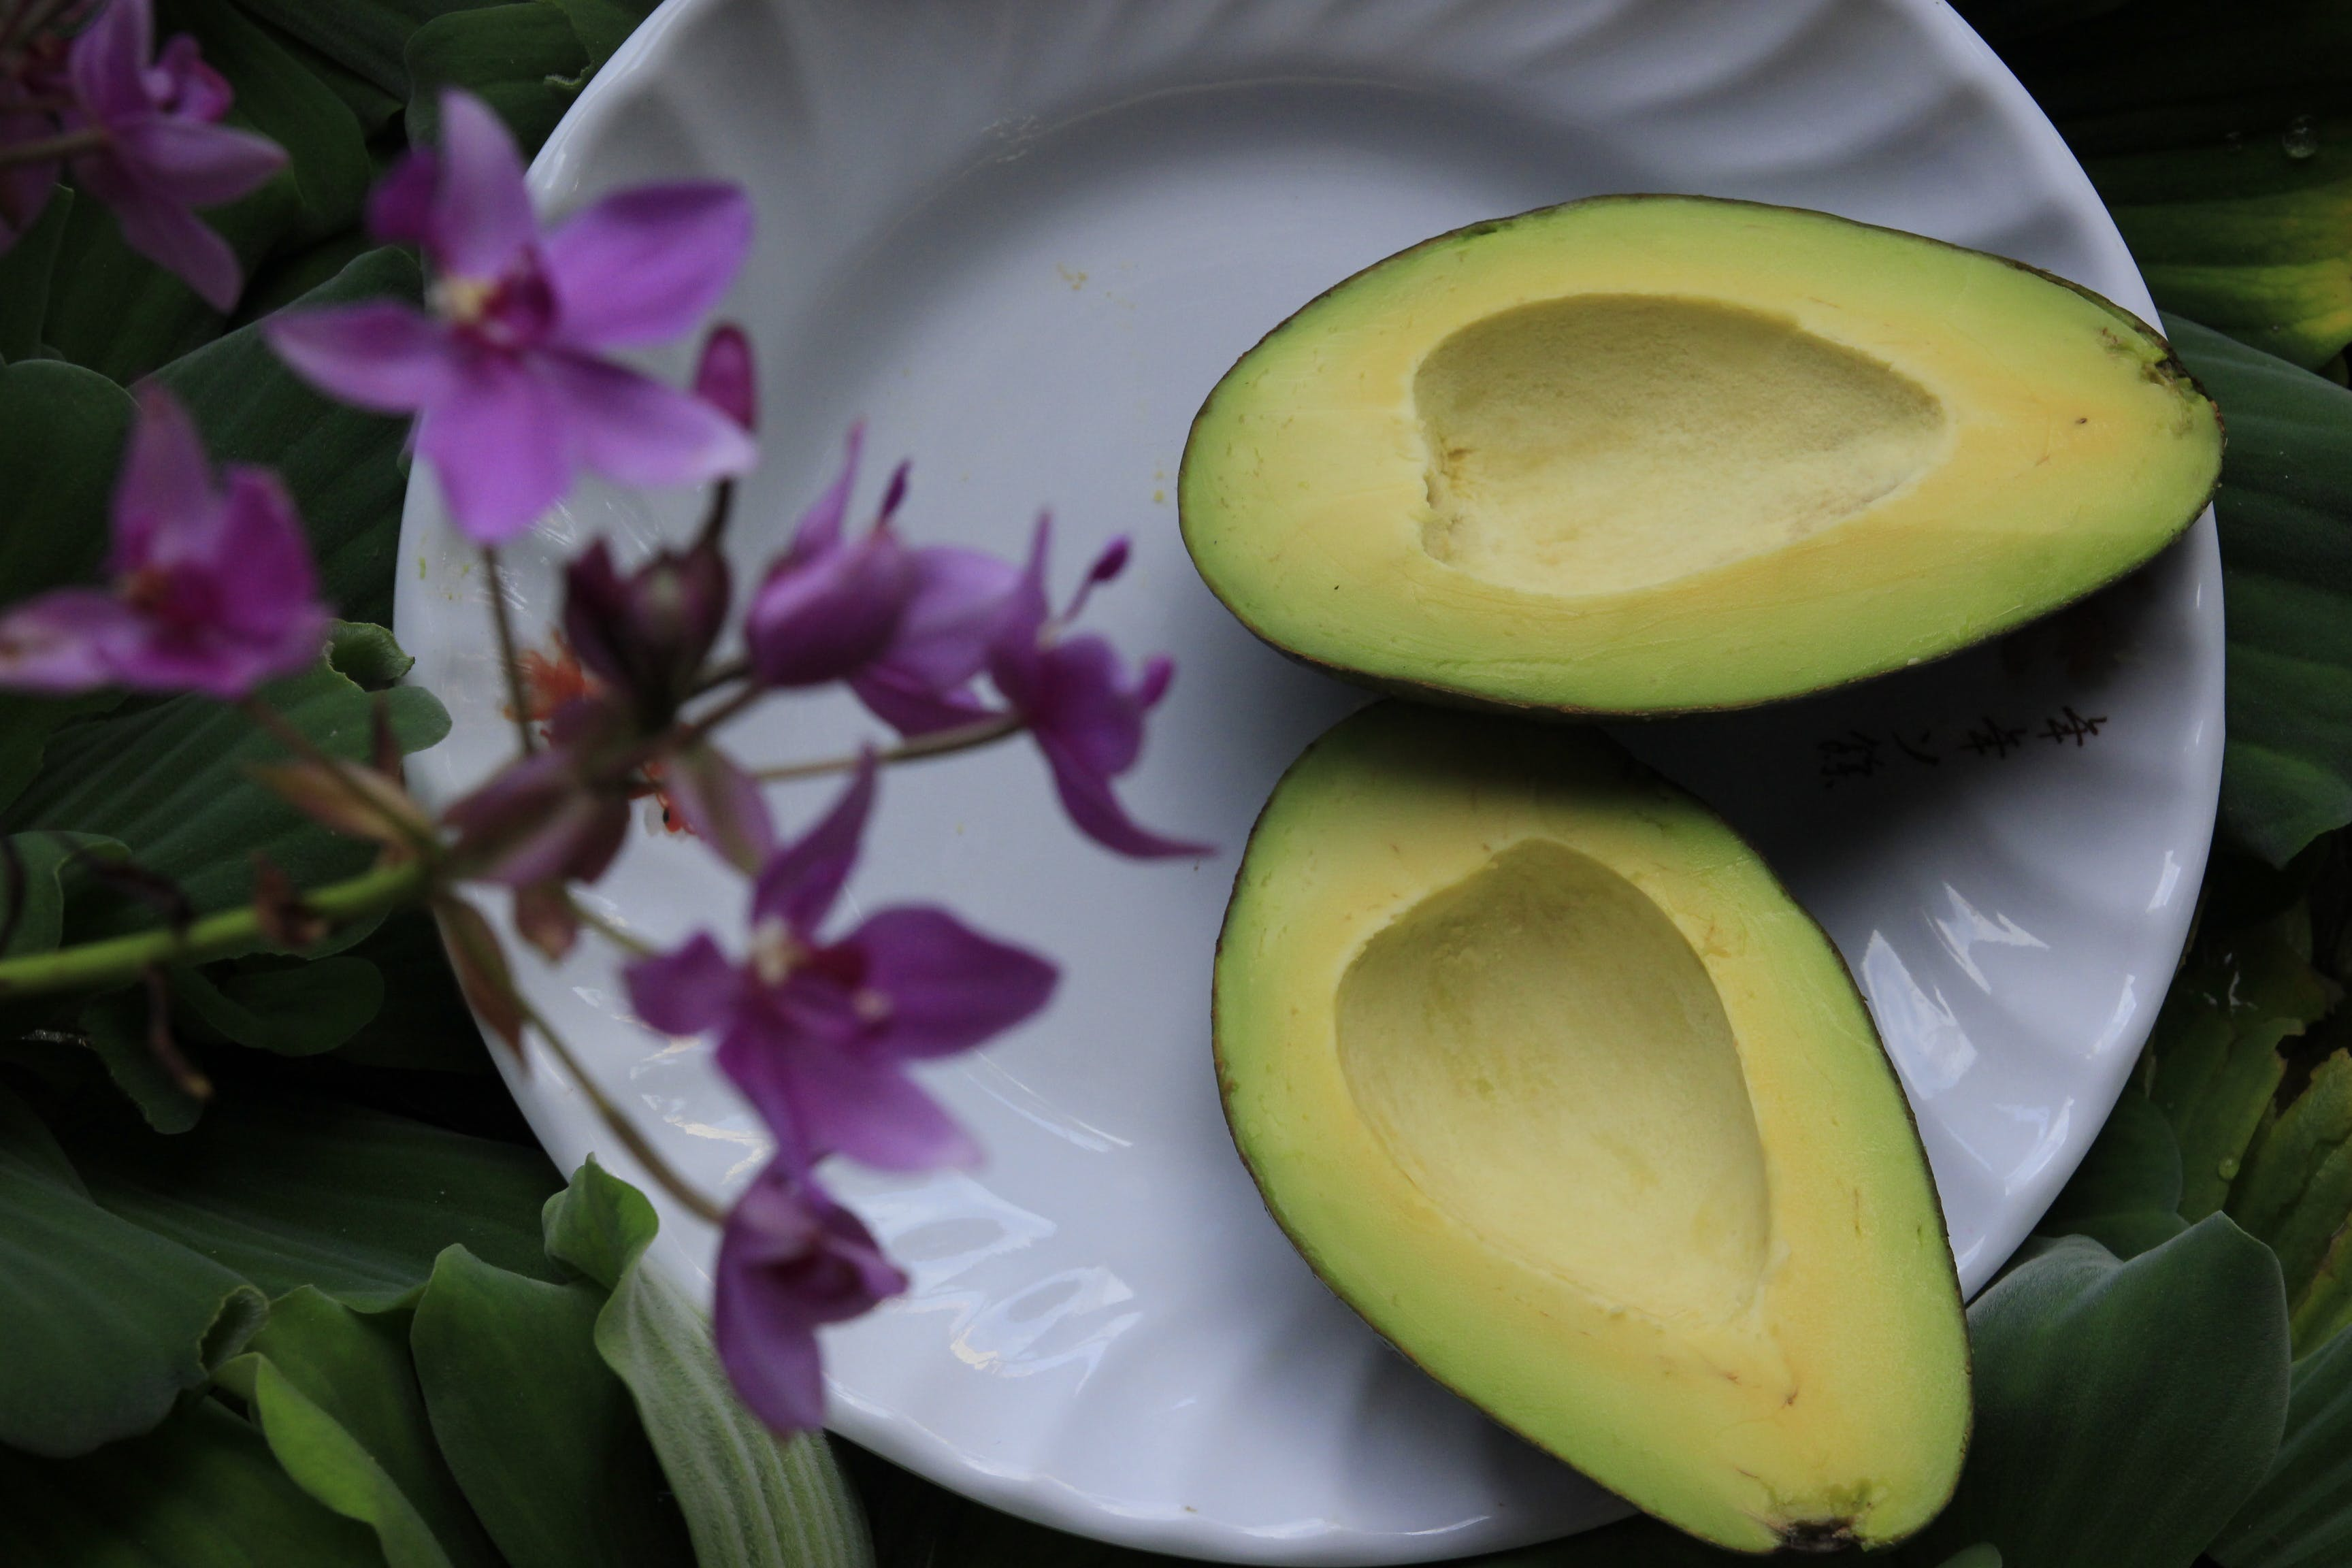 Sliced Avocado on White Ceramic Plate